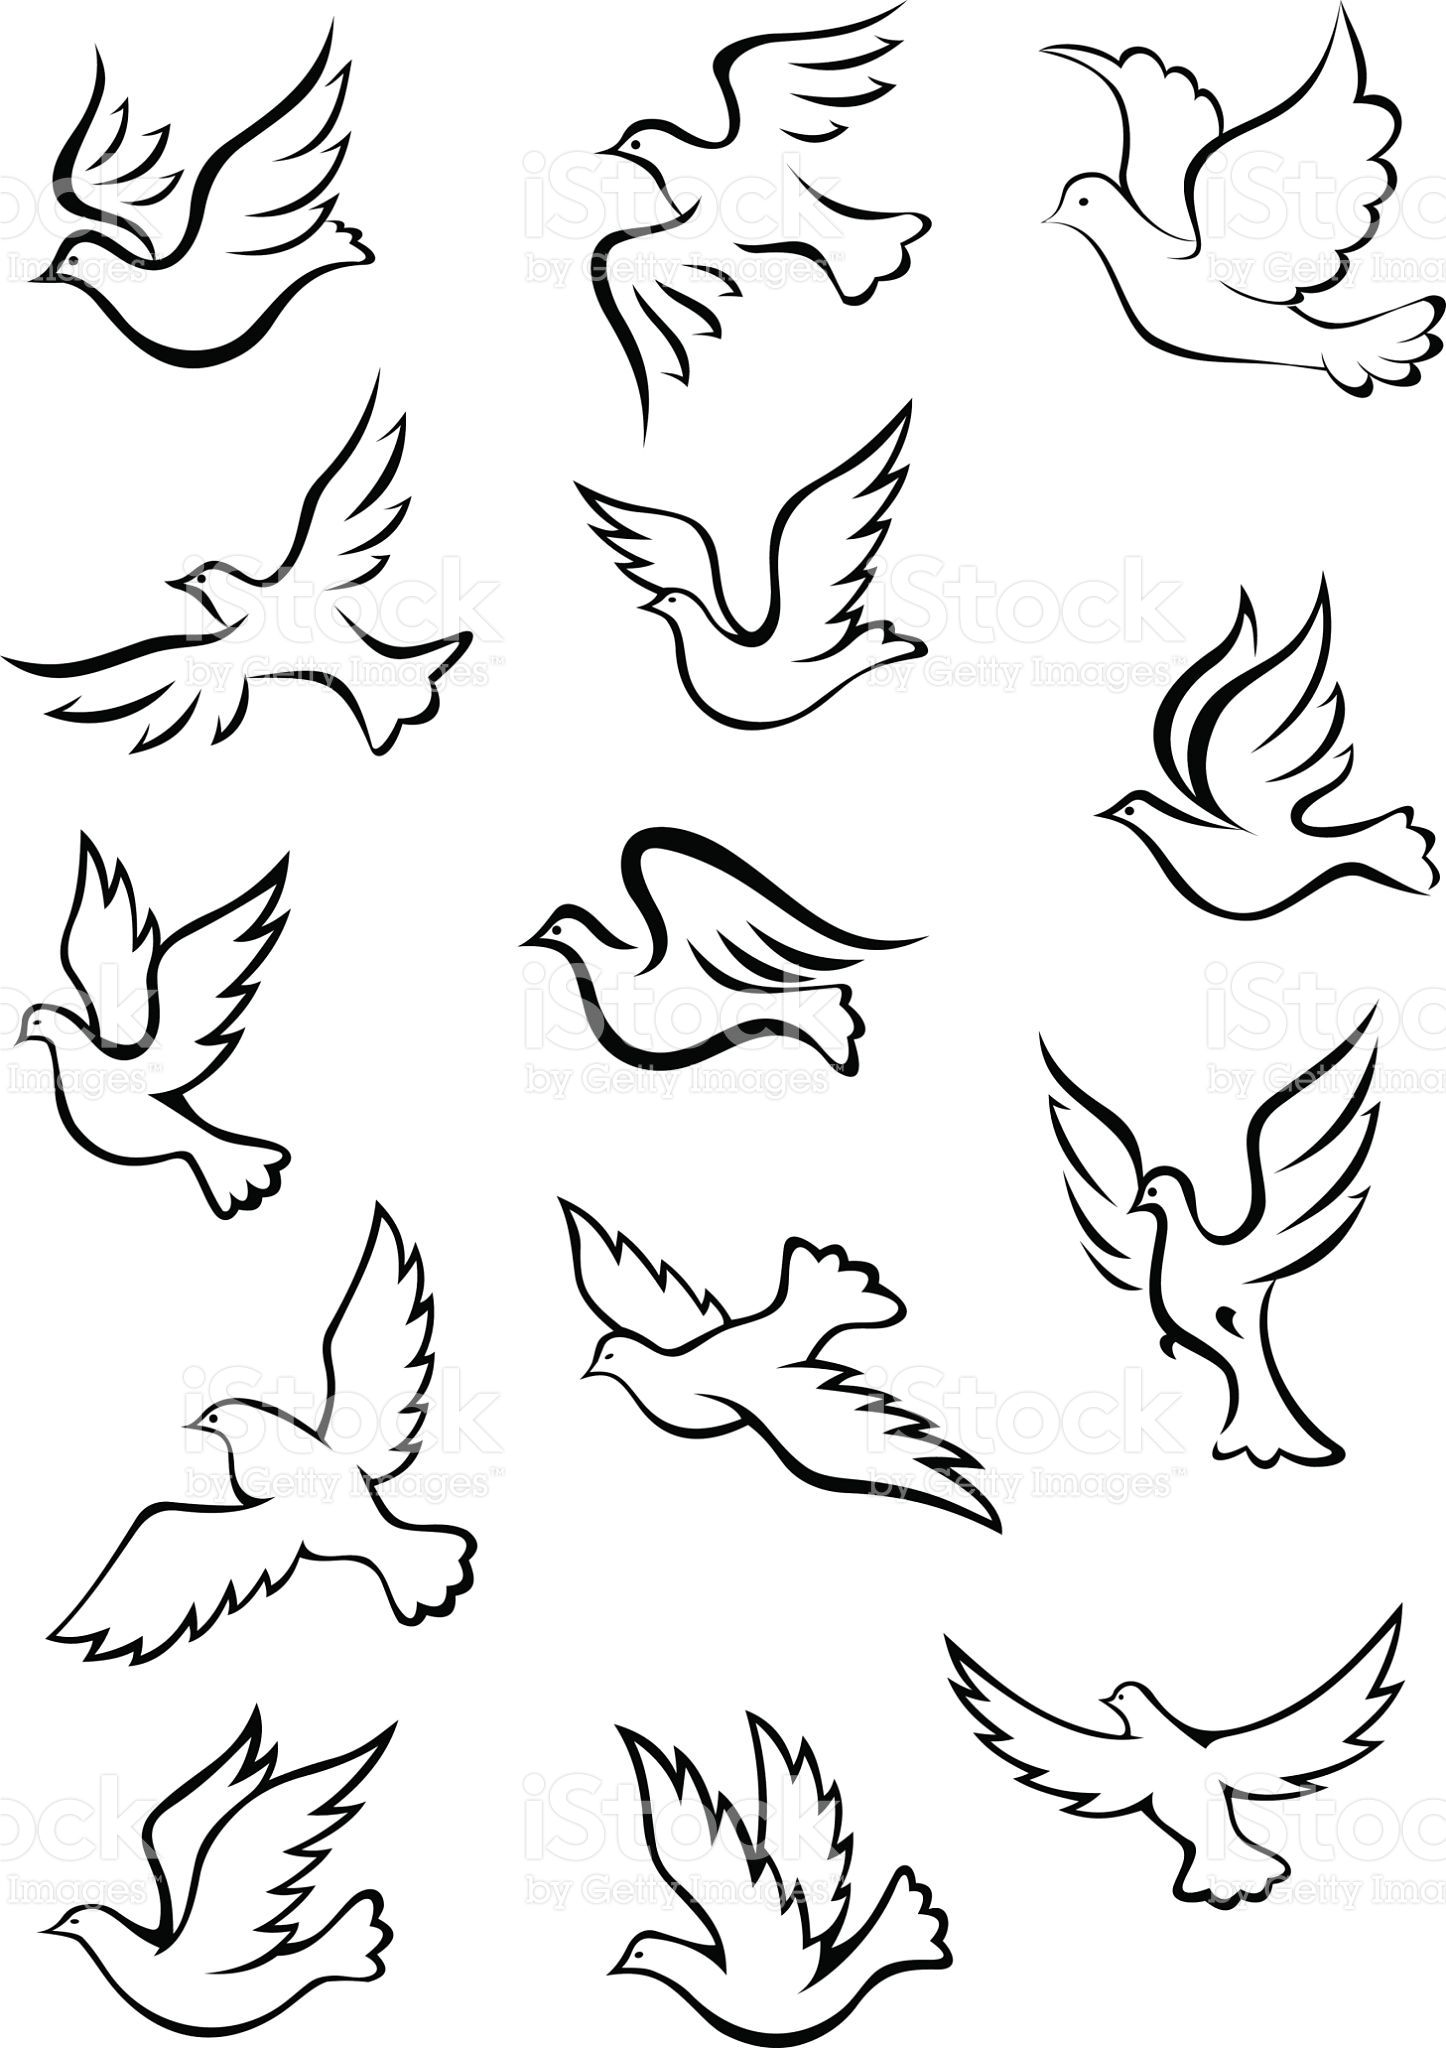 Outline Graceful Dove And Pigeon Birds Set In Sketch Style For